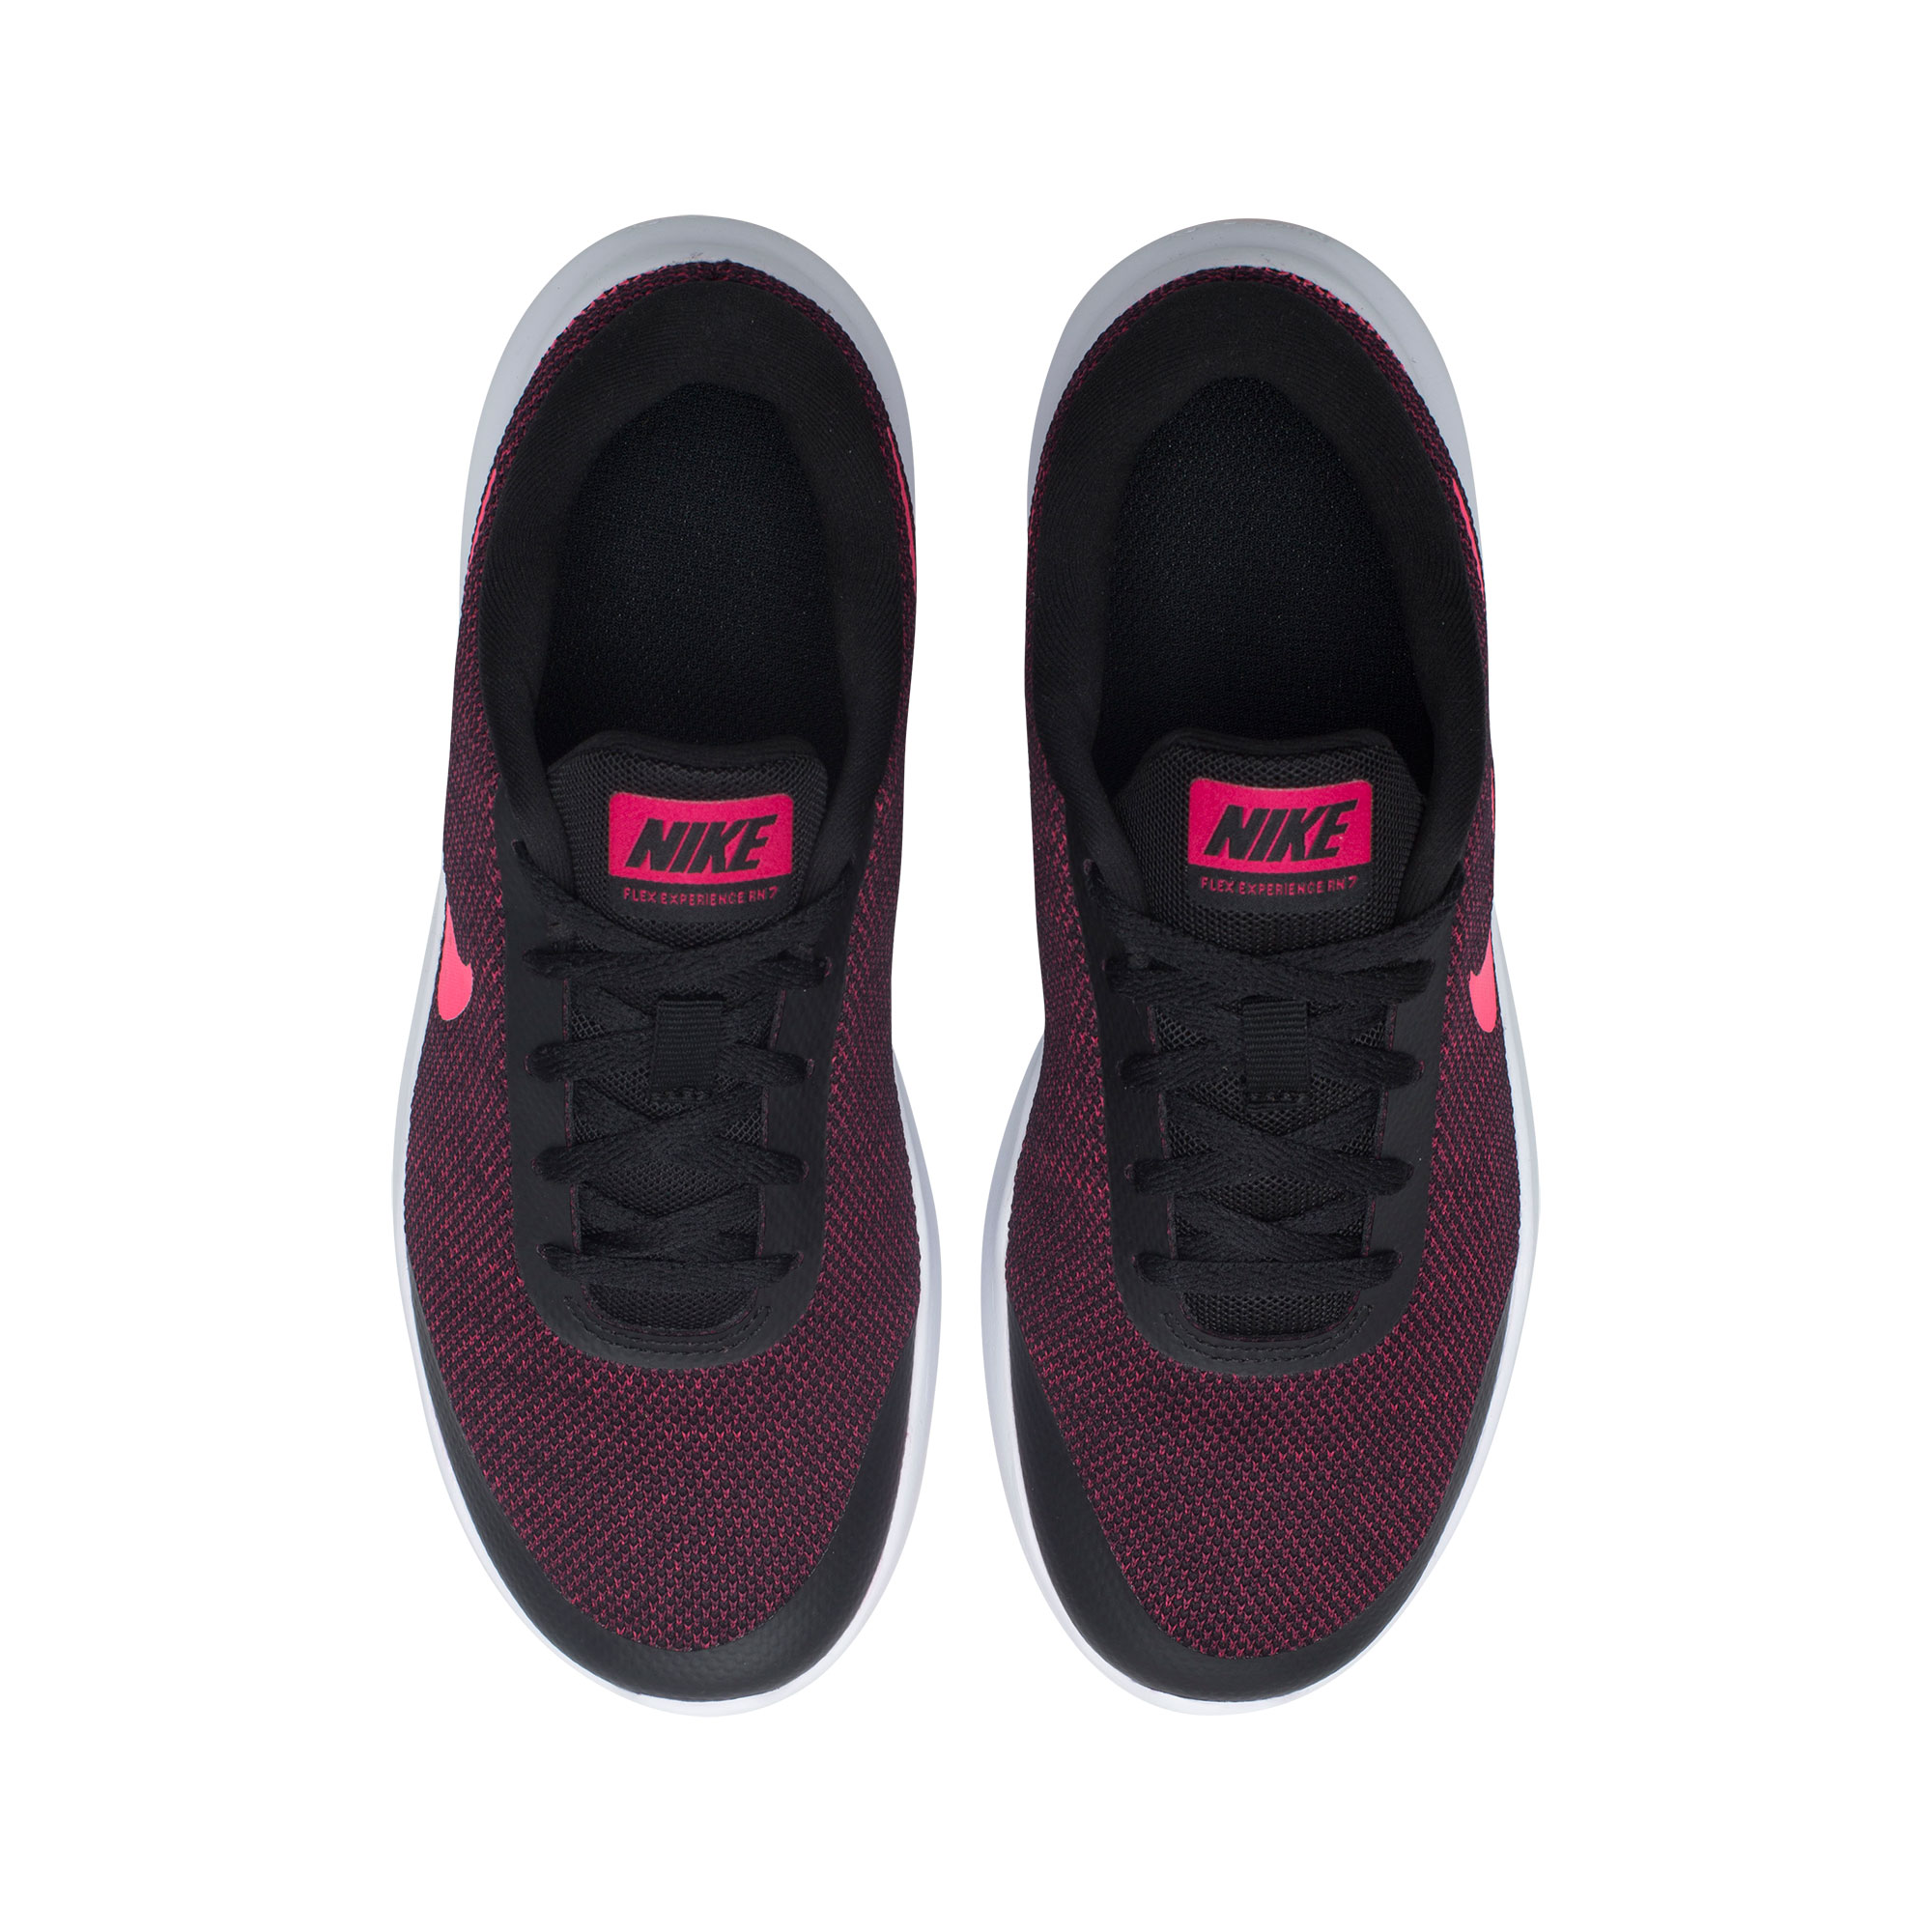 ee4d6a78ed5eb Original New Arrival Authentic NIKE FLEX EXPERIENCE RN 7 Women Sneakers  Running Shoes 908996 Sport Outdoor Classic Athletic-in Running Shoes from  Sports ...